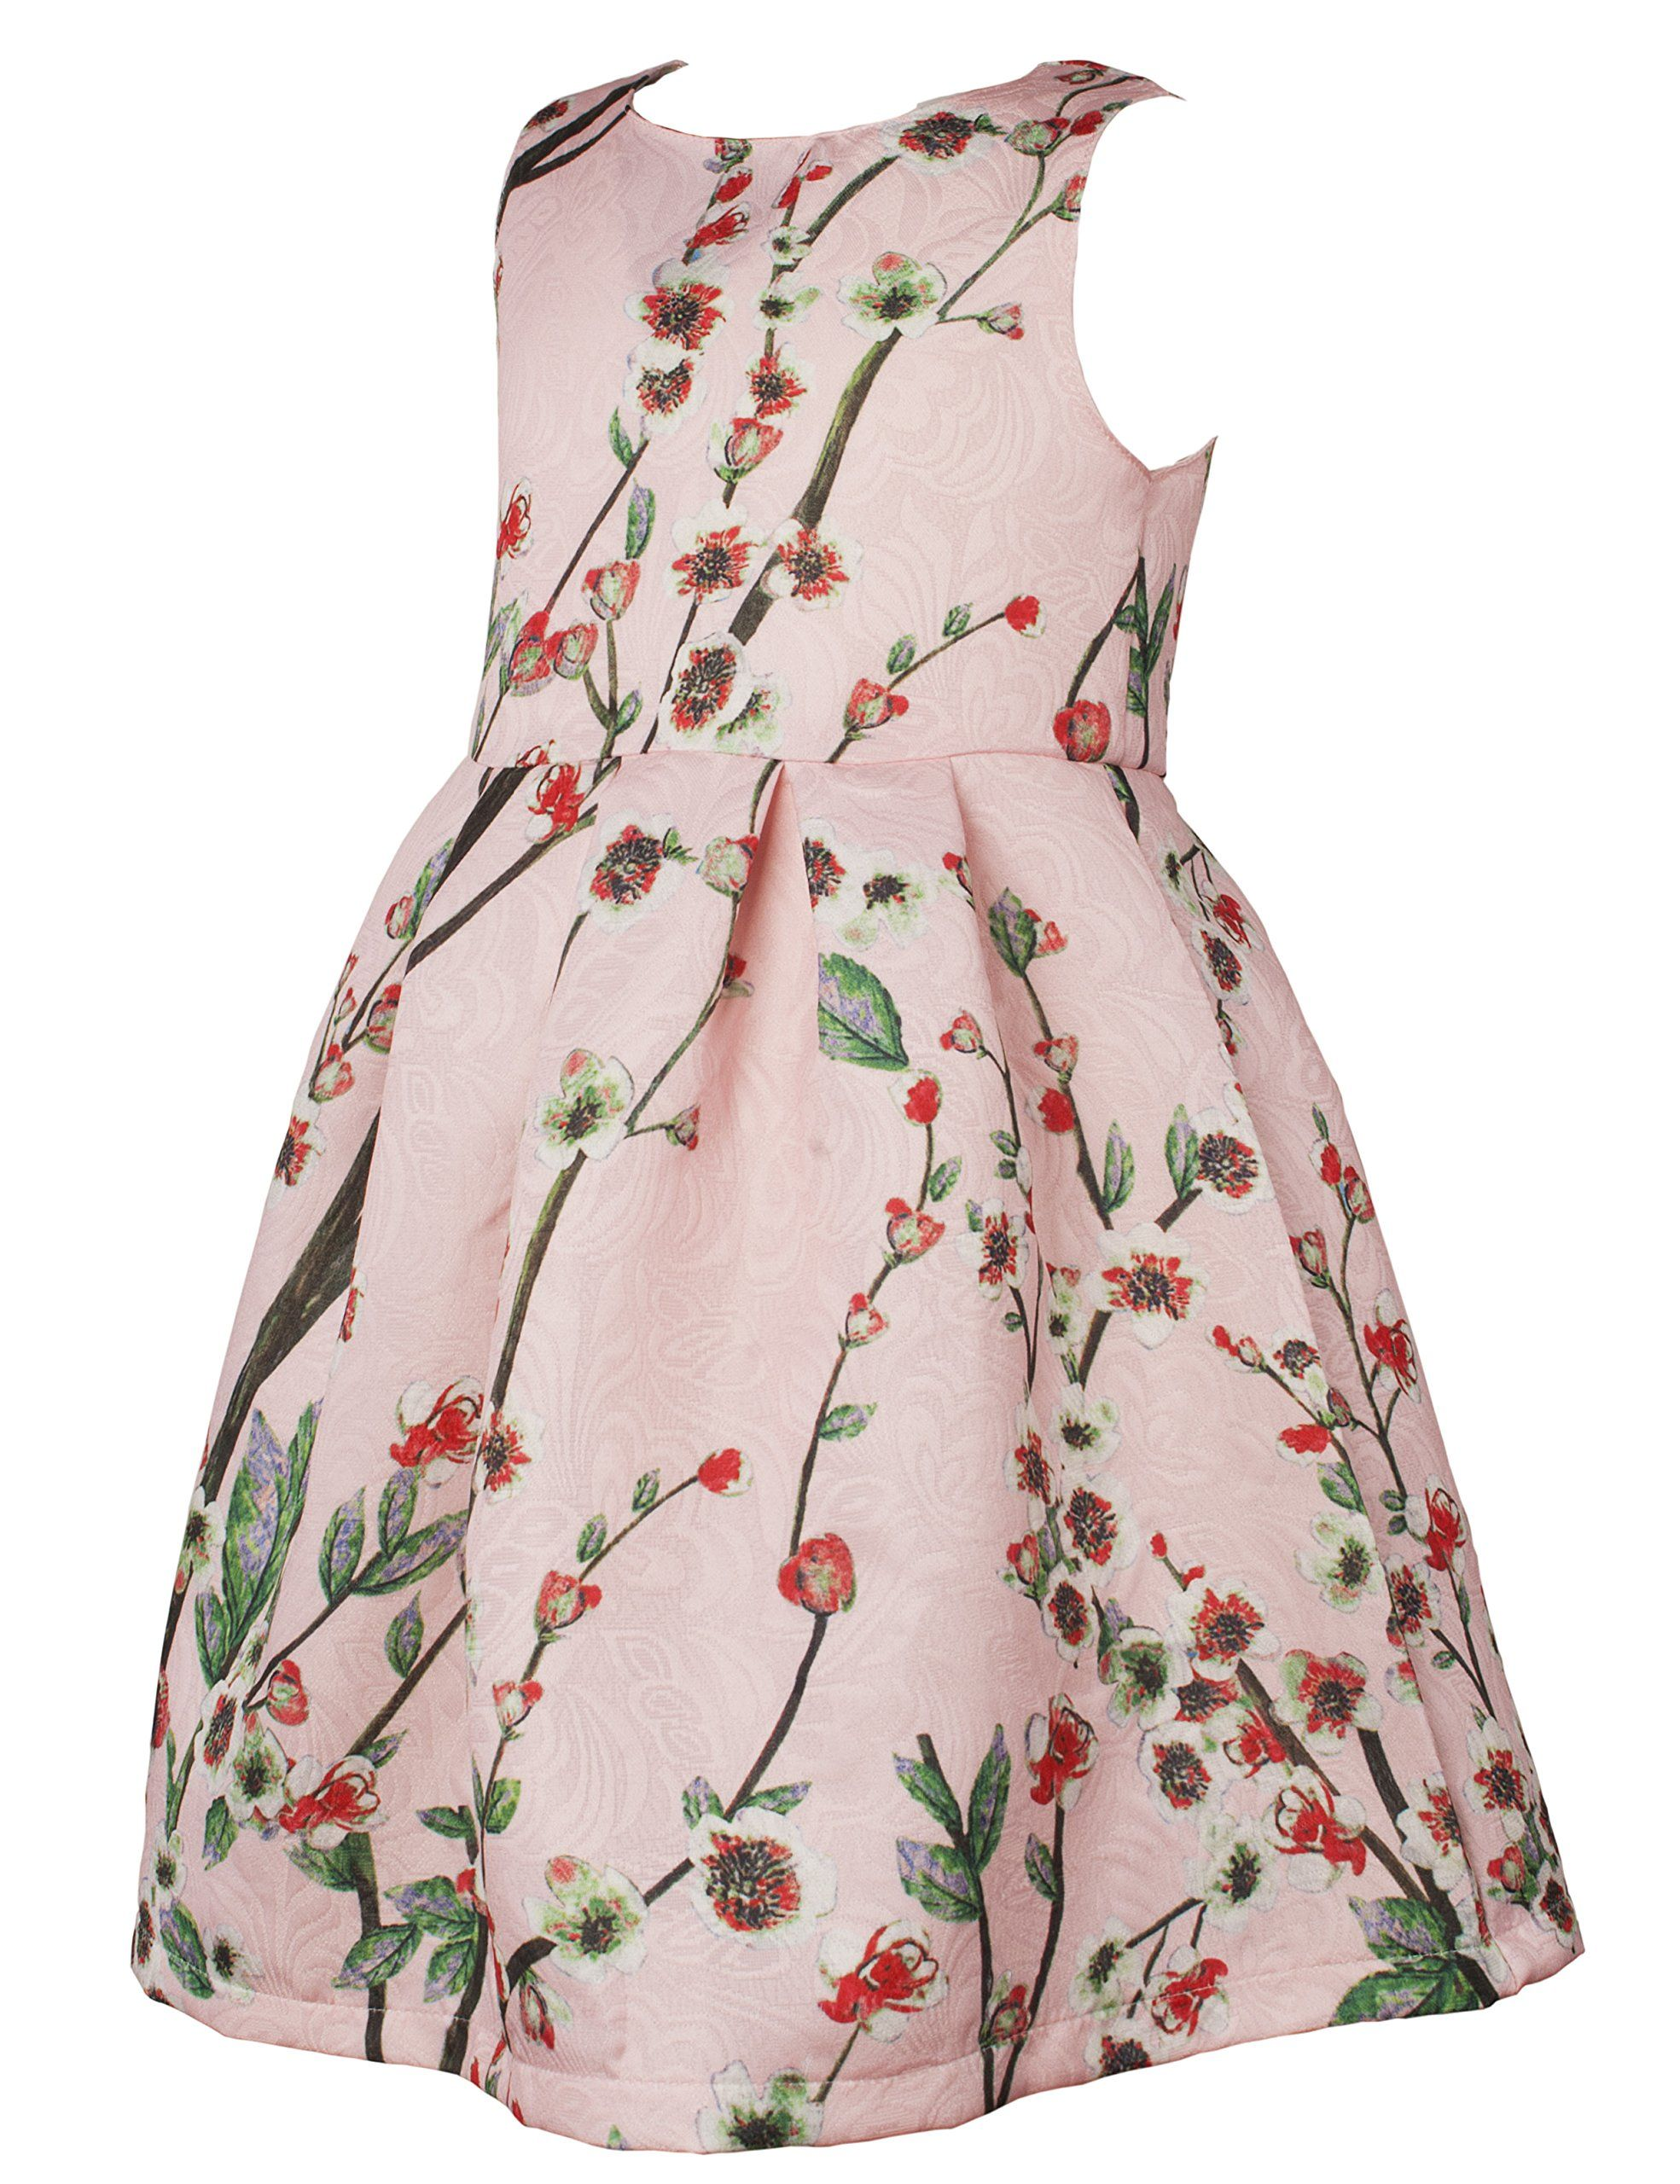 c6db0e44551a Ipuang Little Girls Lovely Flower Pattern Dresses For Special Occasions 4T  Light Pink >>> You can find out more details at the link of the image.